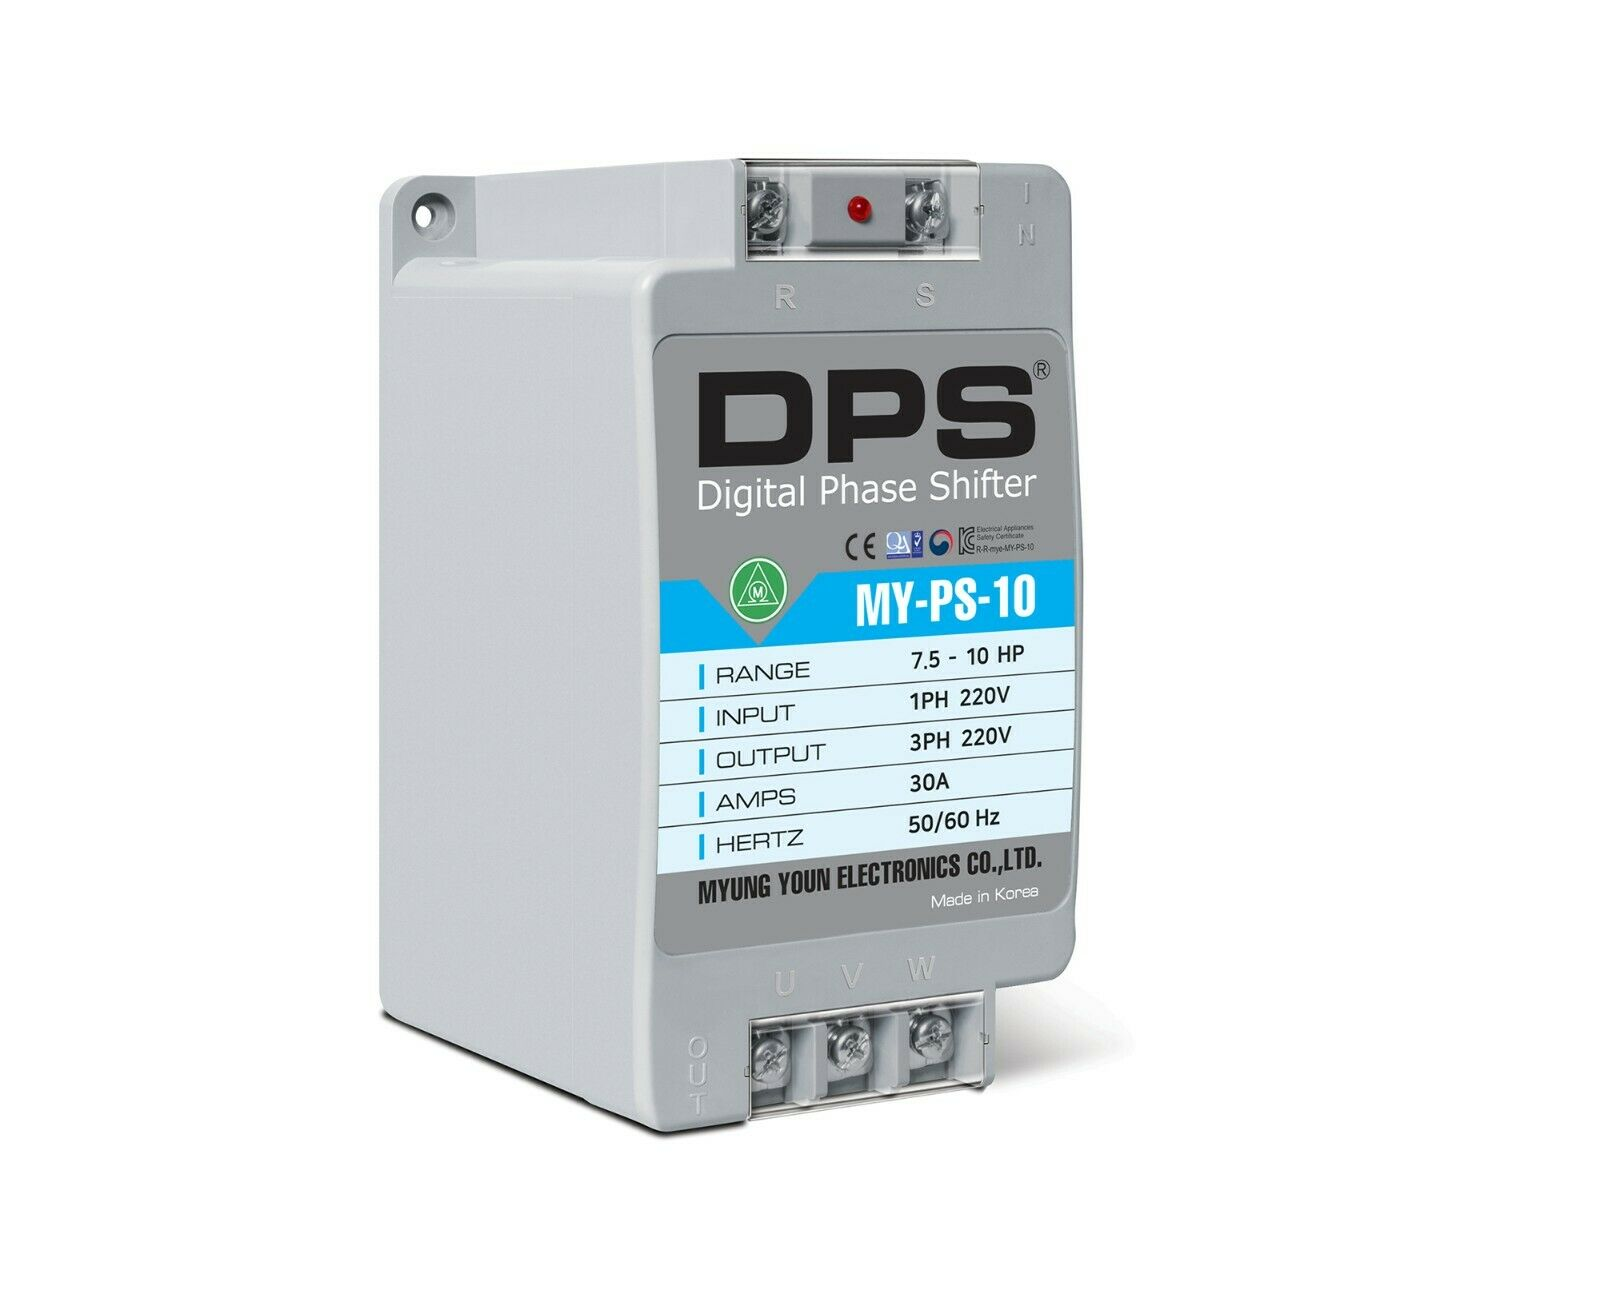 1Phase to 3Phase Converter, MY-PS-10, Best for 7.5HP(5.5KW) 23Amp 200-240V Motor